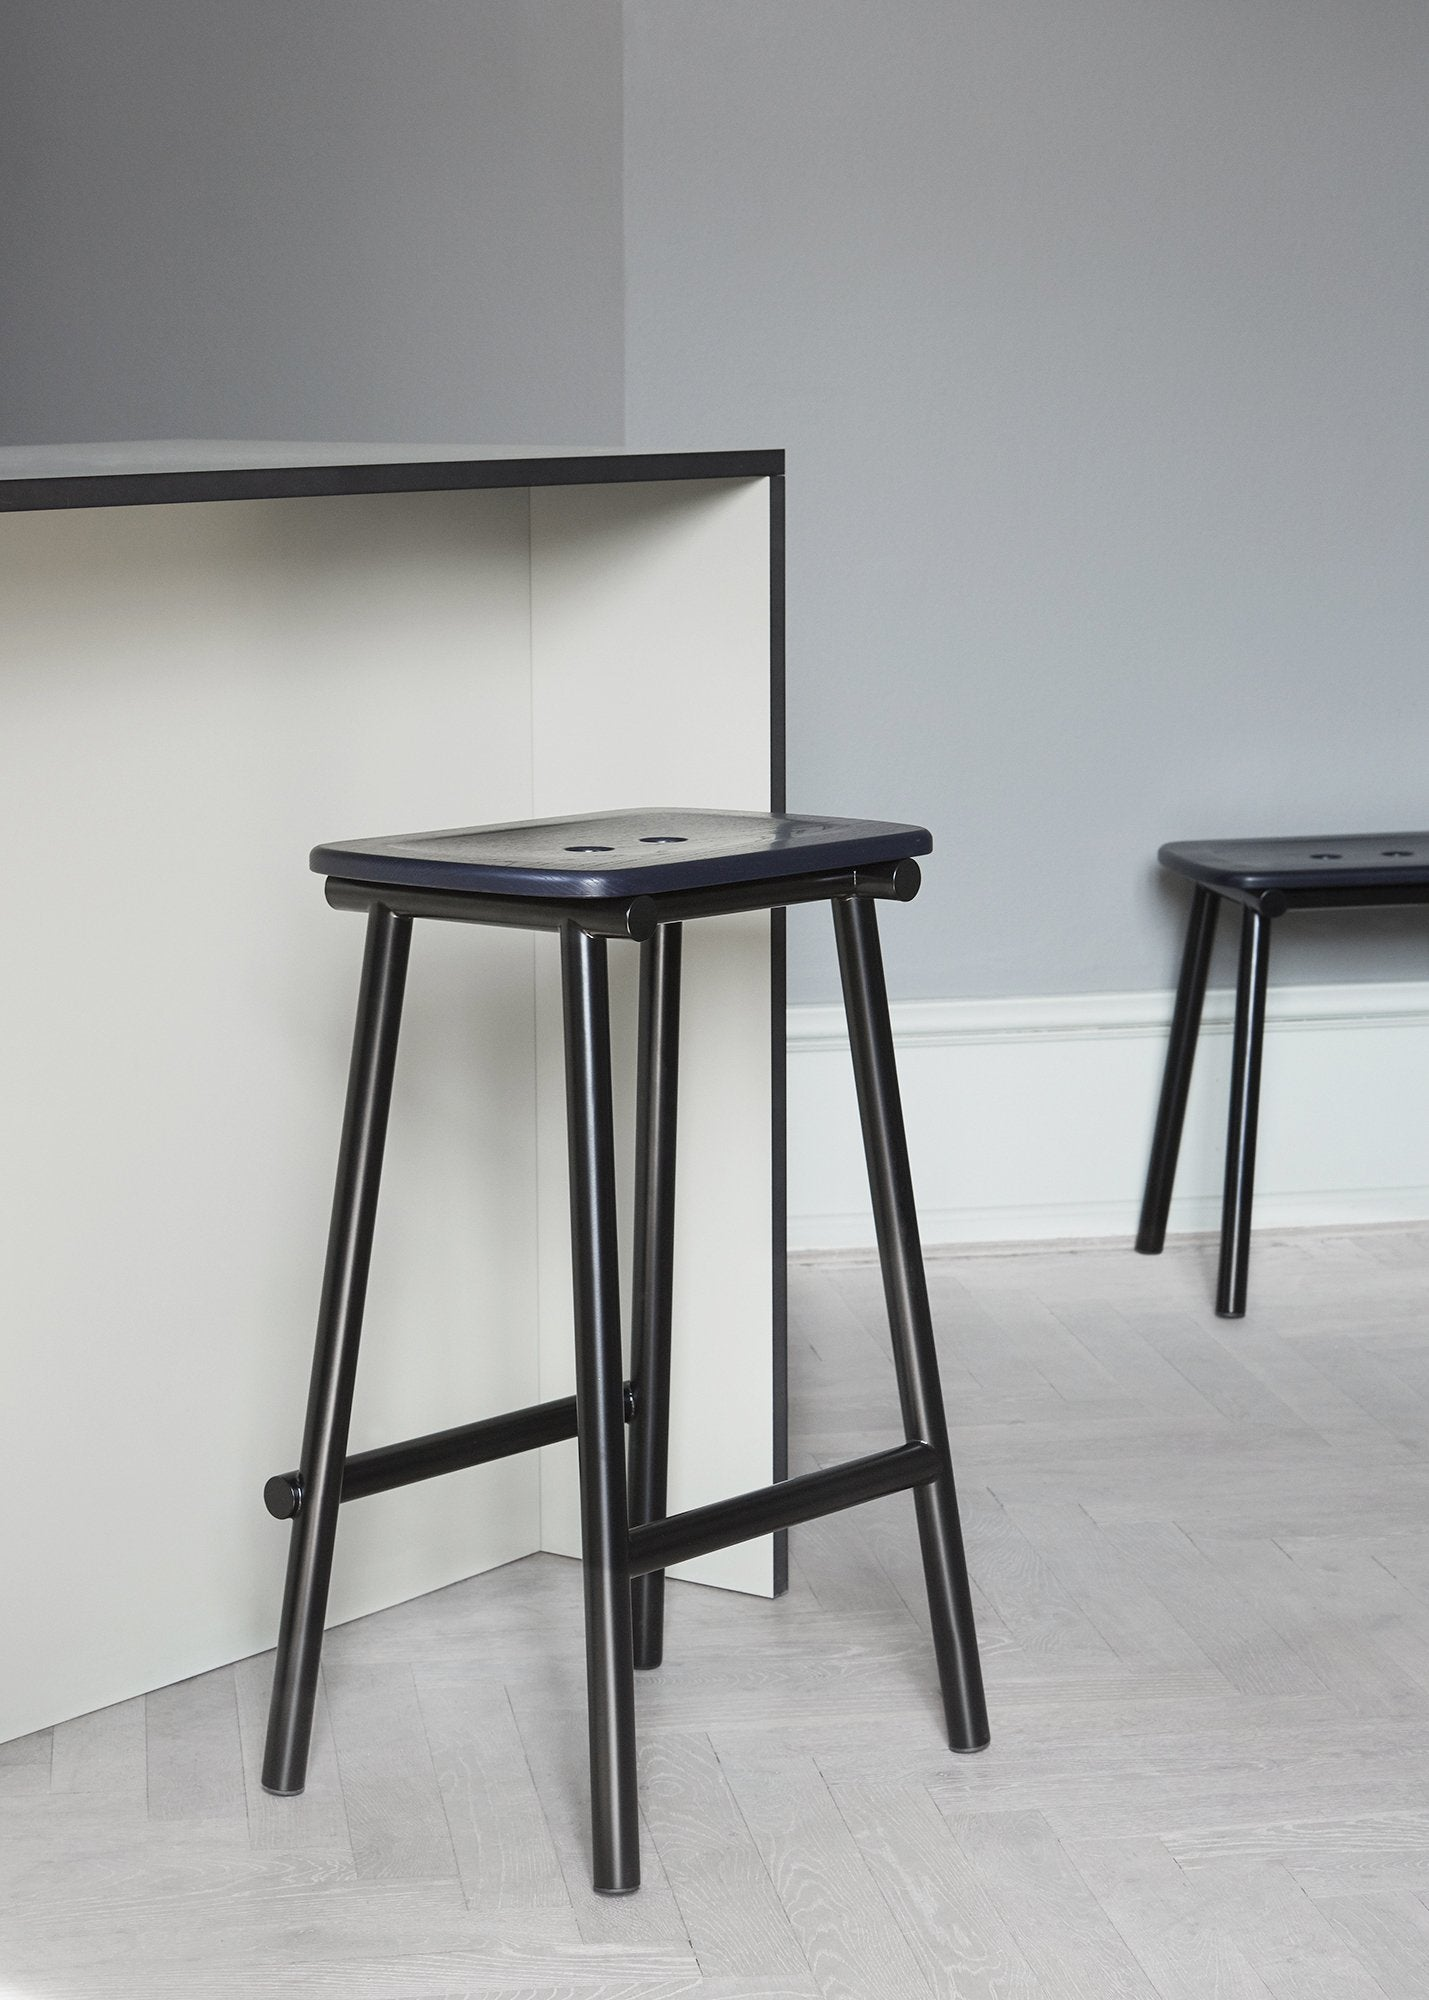 Tubby Counter Stool-Faye Toogood-Please Wait to be Seated-Natural Ash-Average